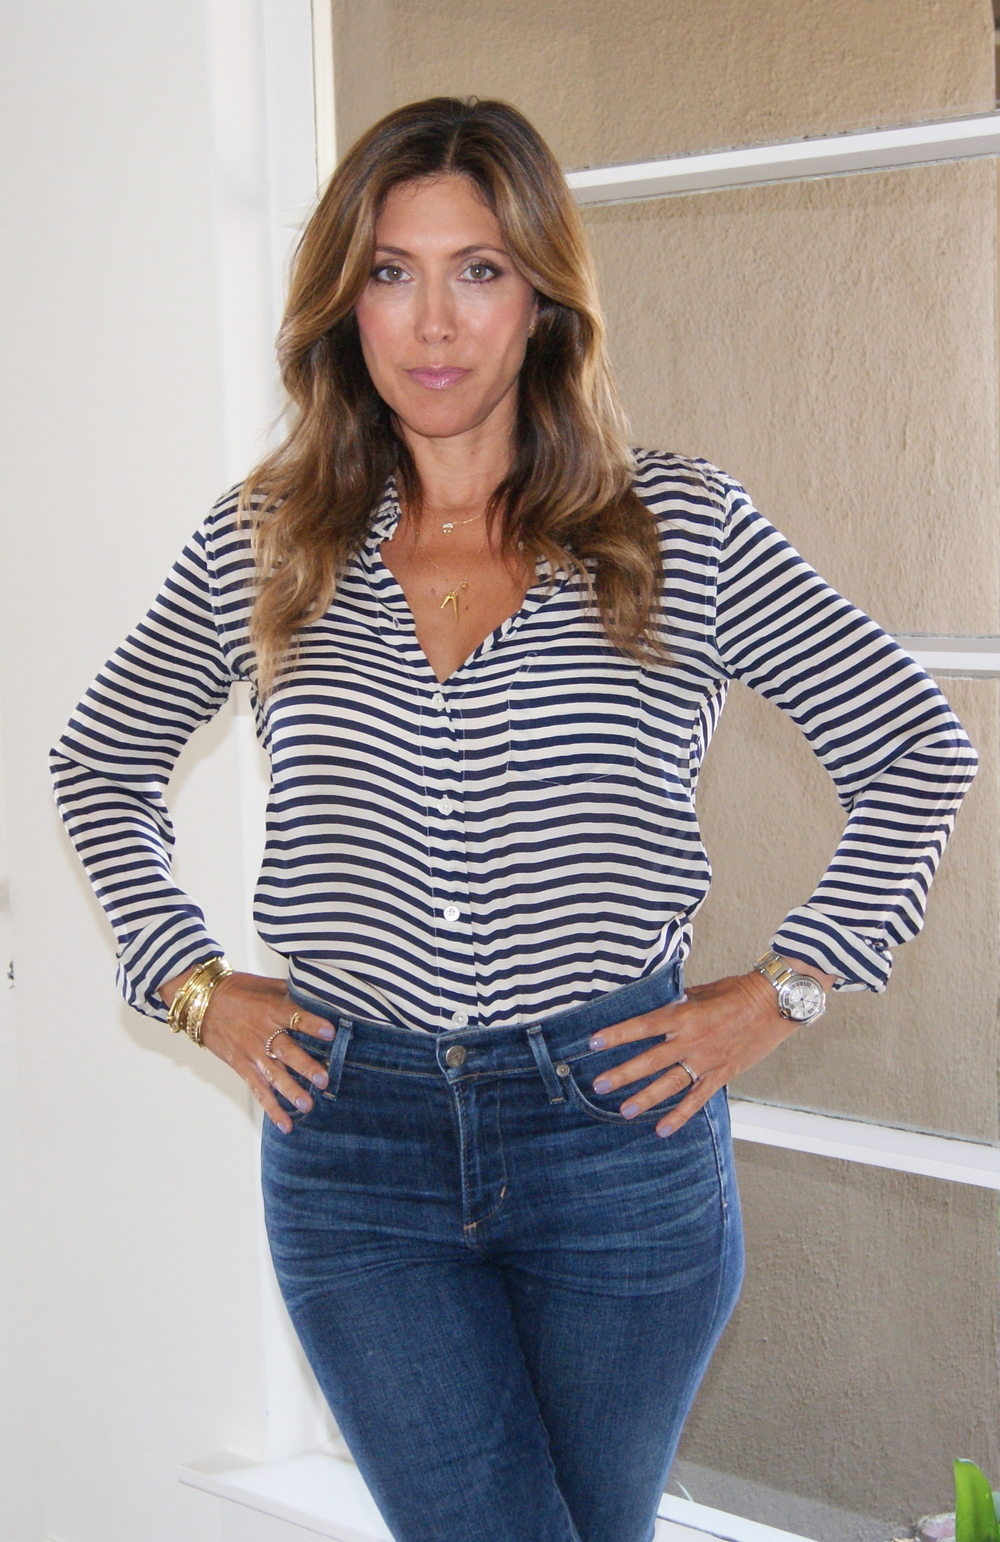 Striped blouse by Closed. Tuck in blouse to show off your waistline!